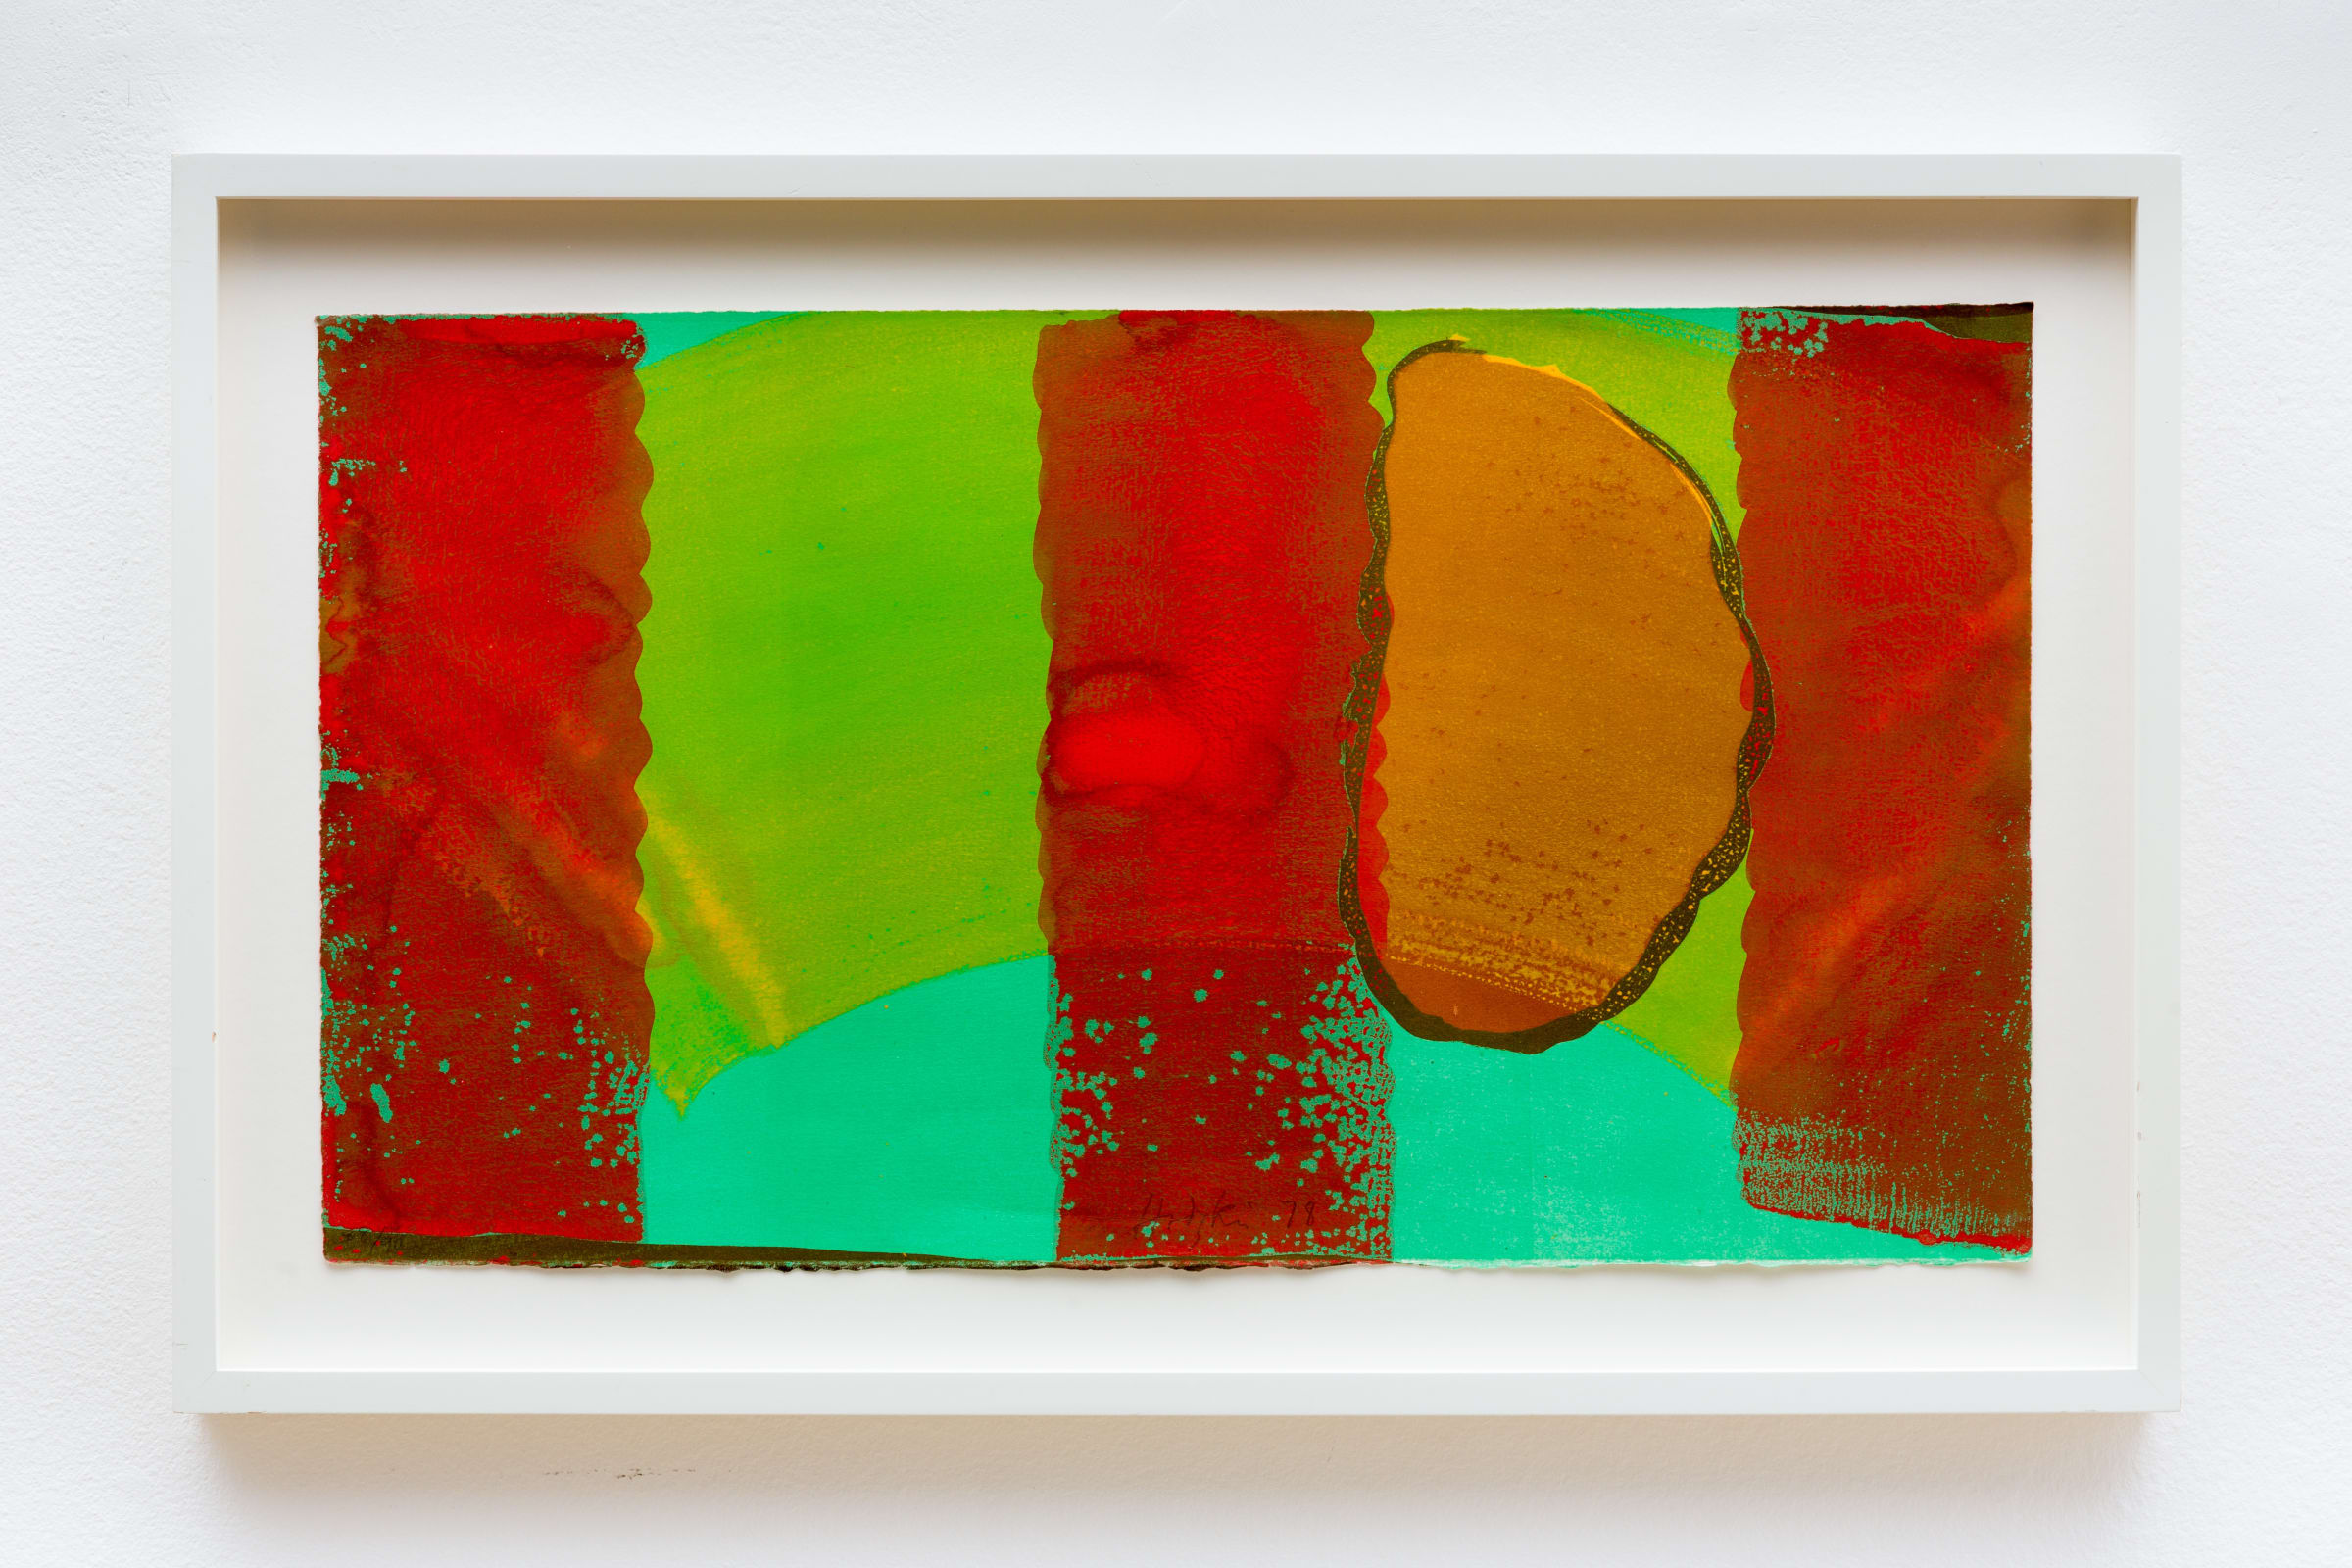 "<span class=""link fancybox-details-link""><a href=""/artists/251-howard-hodgkin/works/11117-howard-hodgkin-alexander-street-1978/"">View Detail Page</a></span><div class=""artist""><span class=""artist""><strong>HOWARD HODGKIN</strong></span></div>